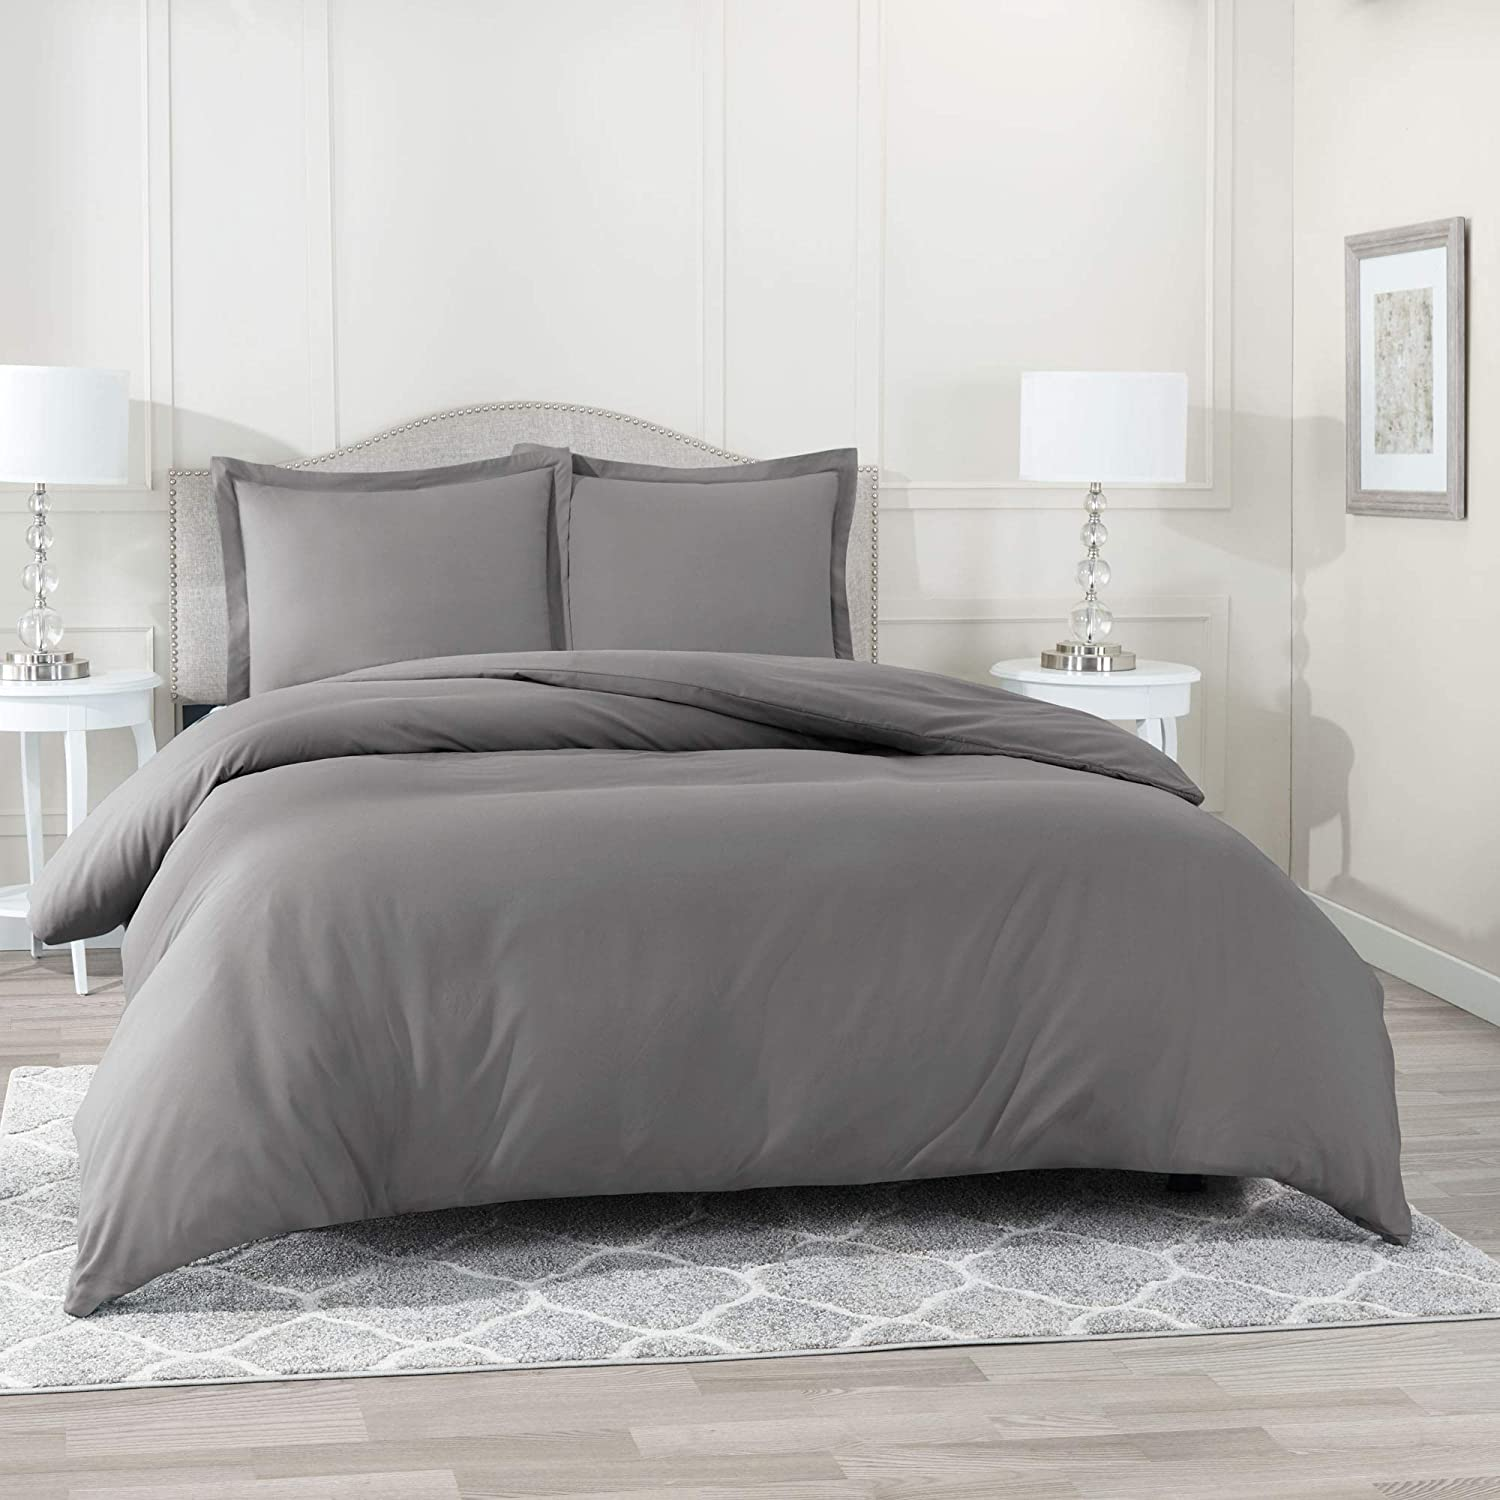 """Nestl Bedding Duvet Cover 3 Piece Set – Ultra Soft Double Brushed Microfiber Hotel Collection – Comforter Cover with Button Closure and 2 Pillow Shams, Gray - Queen 90""""x90"""""""